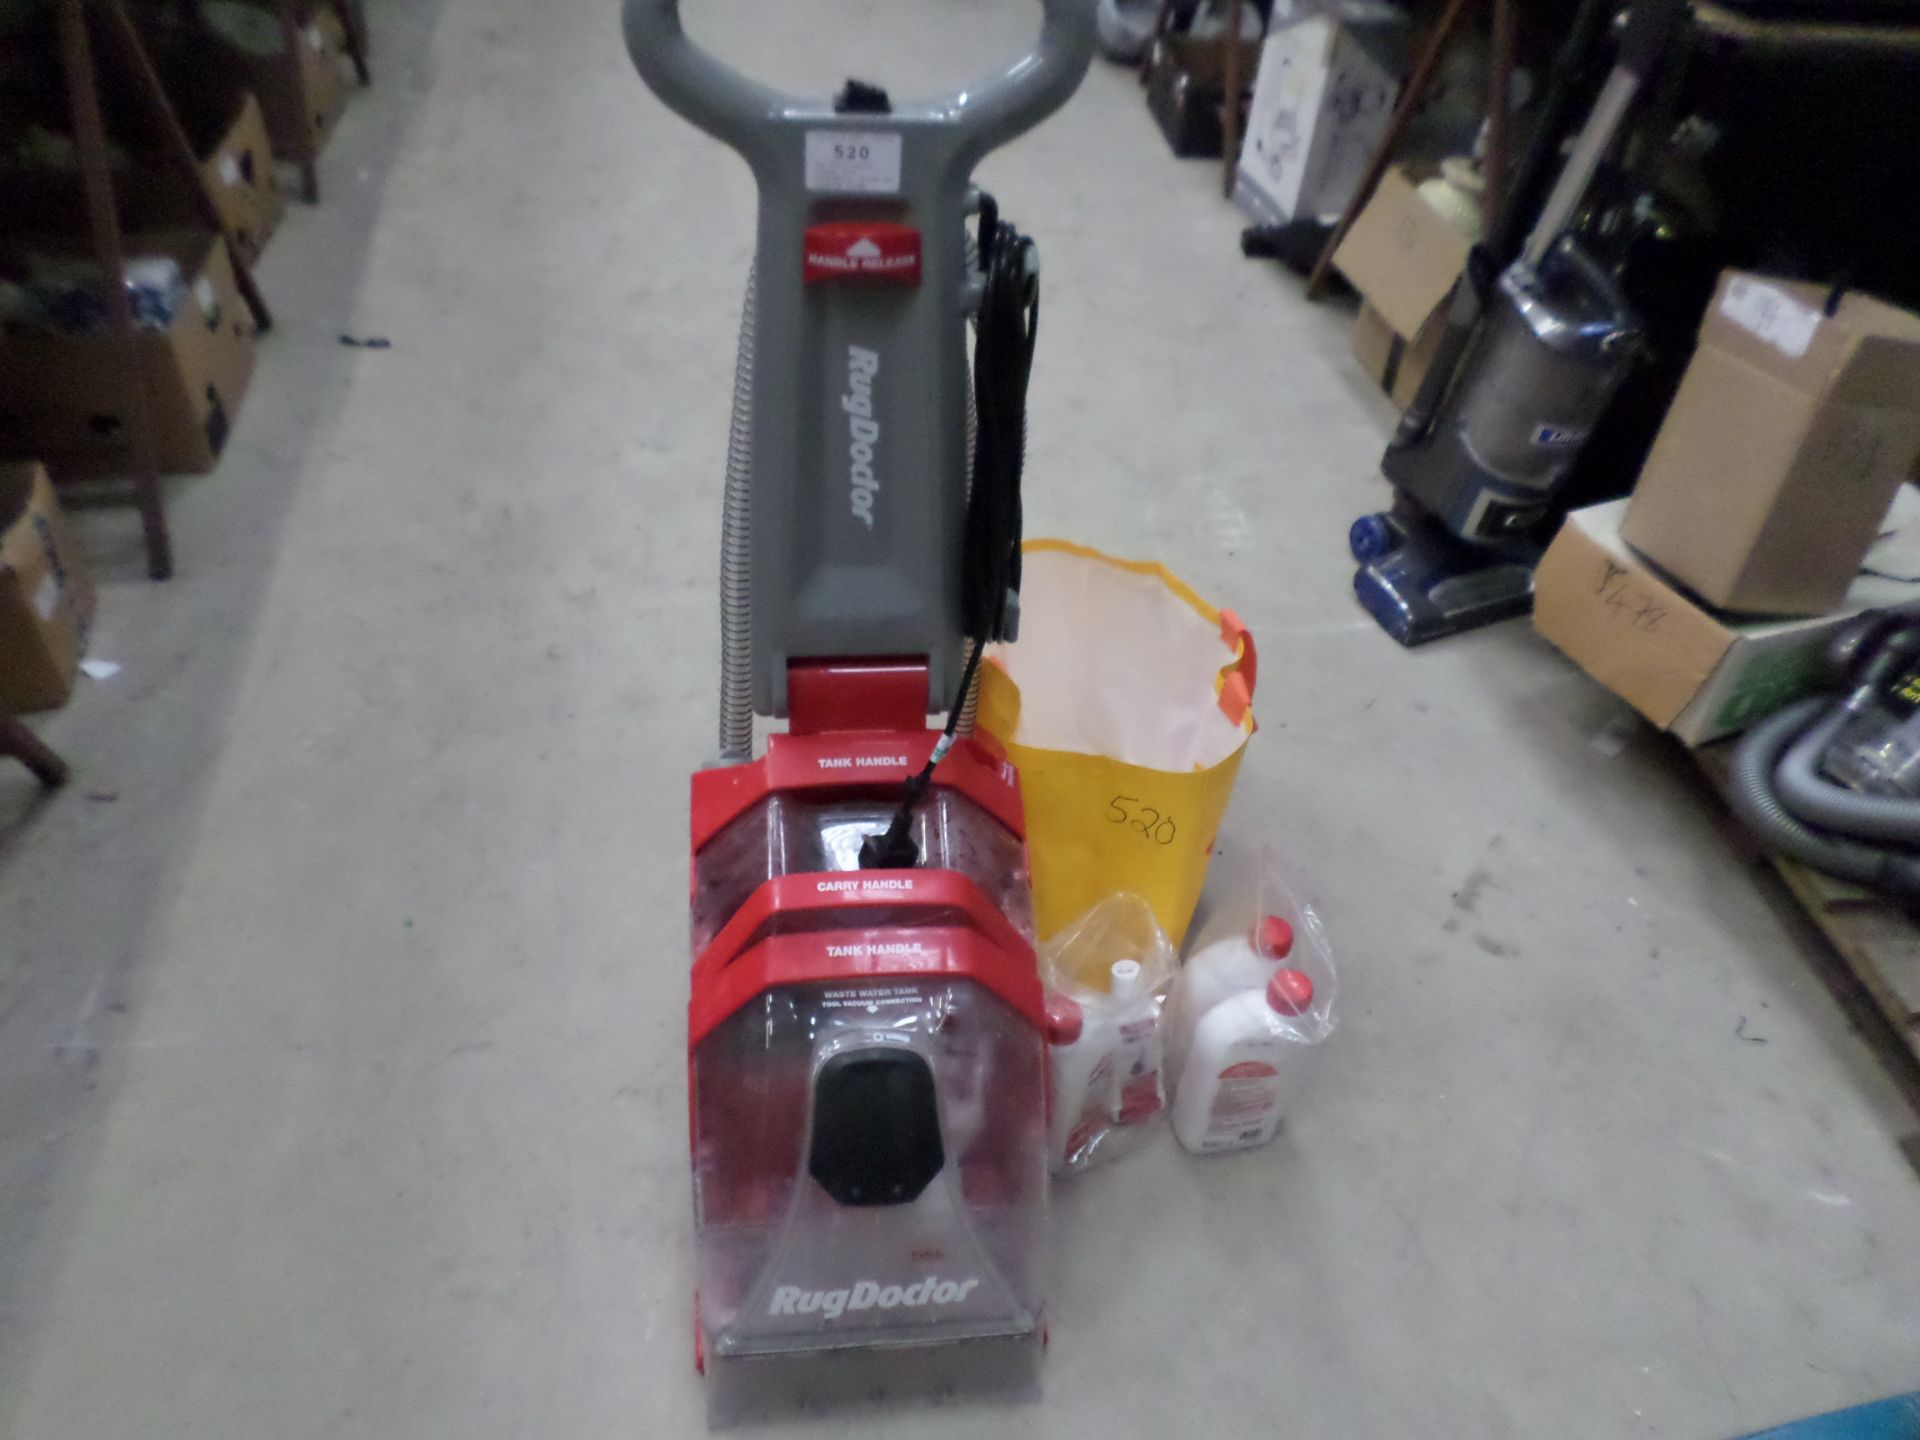 Rug Doctor carpet cleaner with attachments, manual and cleaning fluids